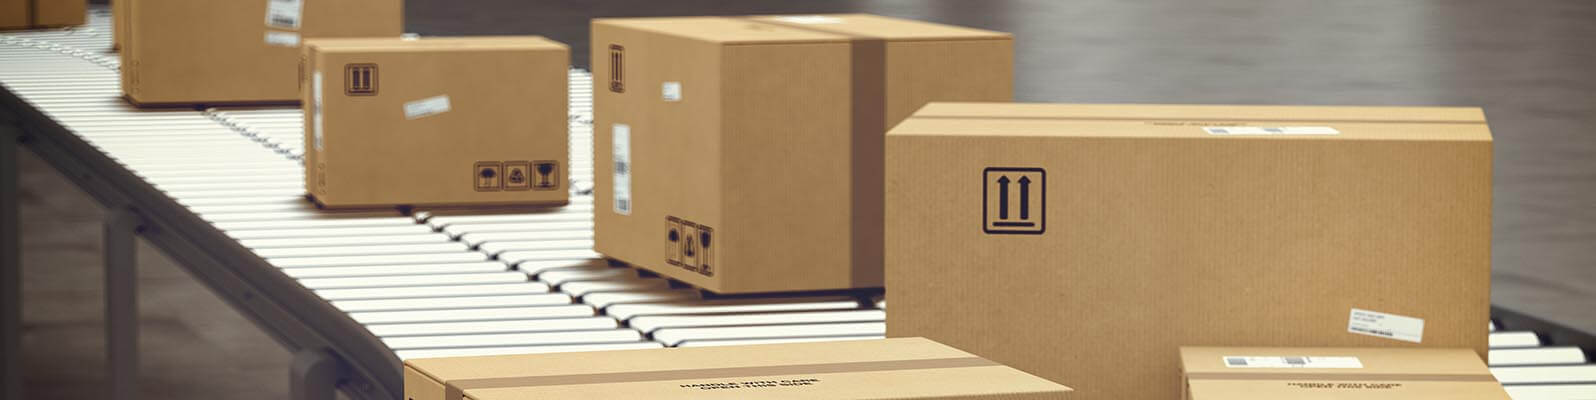 e-commerce fulfillment for online retailers